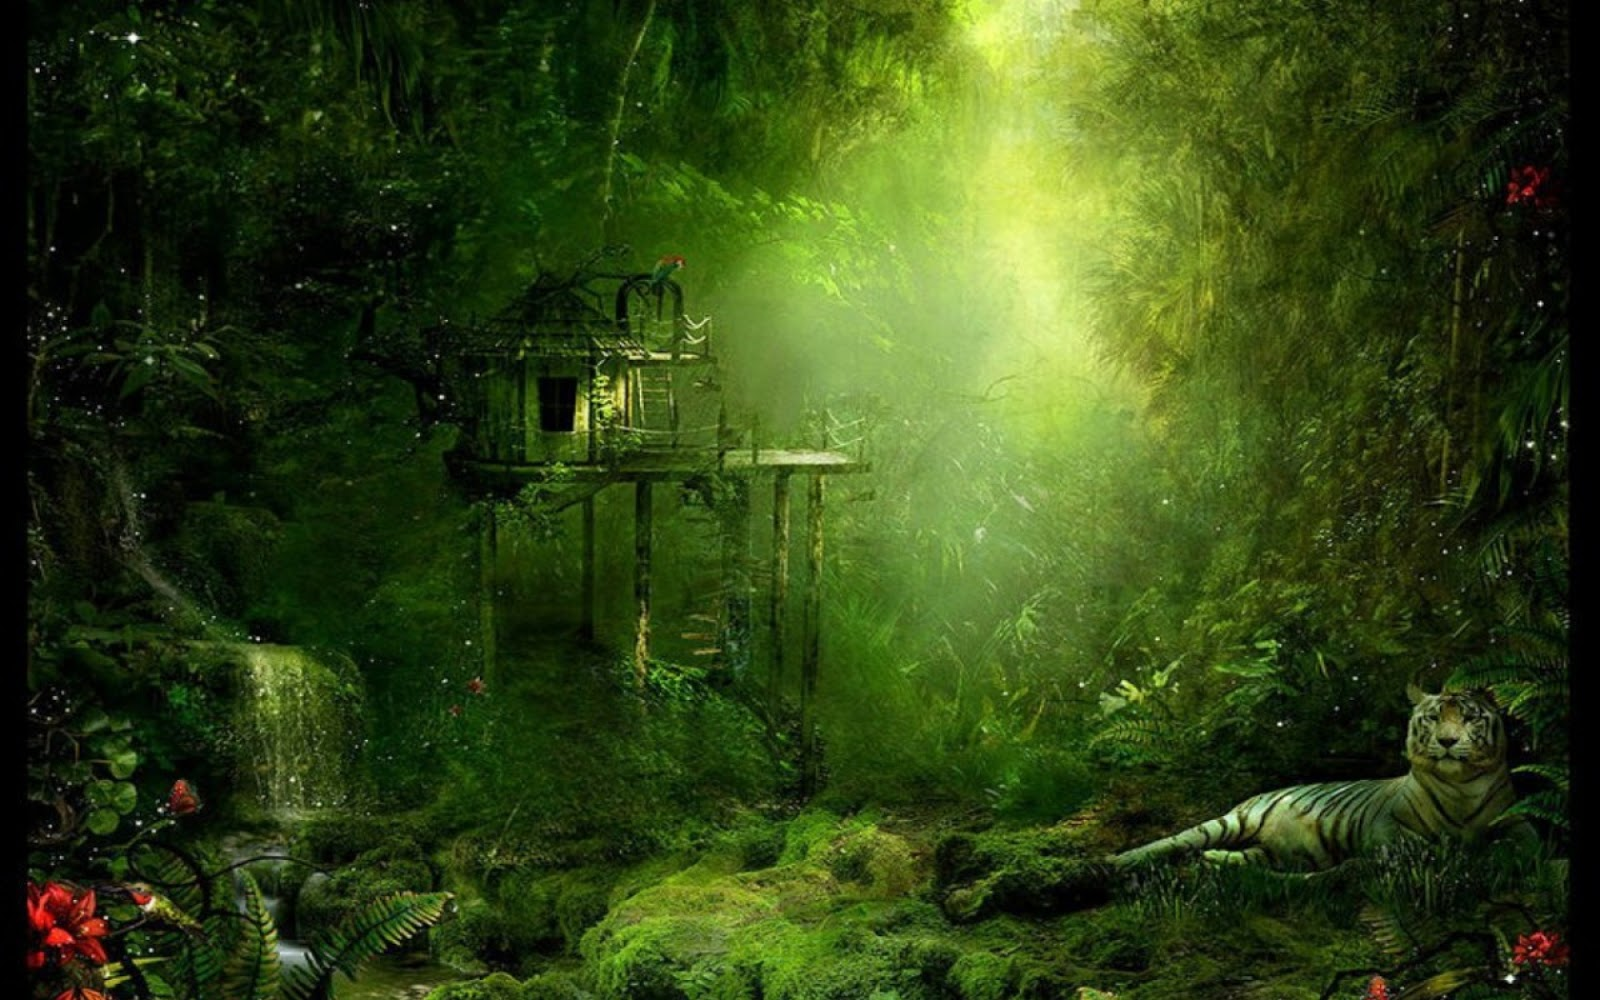 Jungle wallpaper for home wallpapersafari for Home wallpaper videos